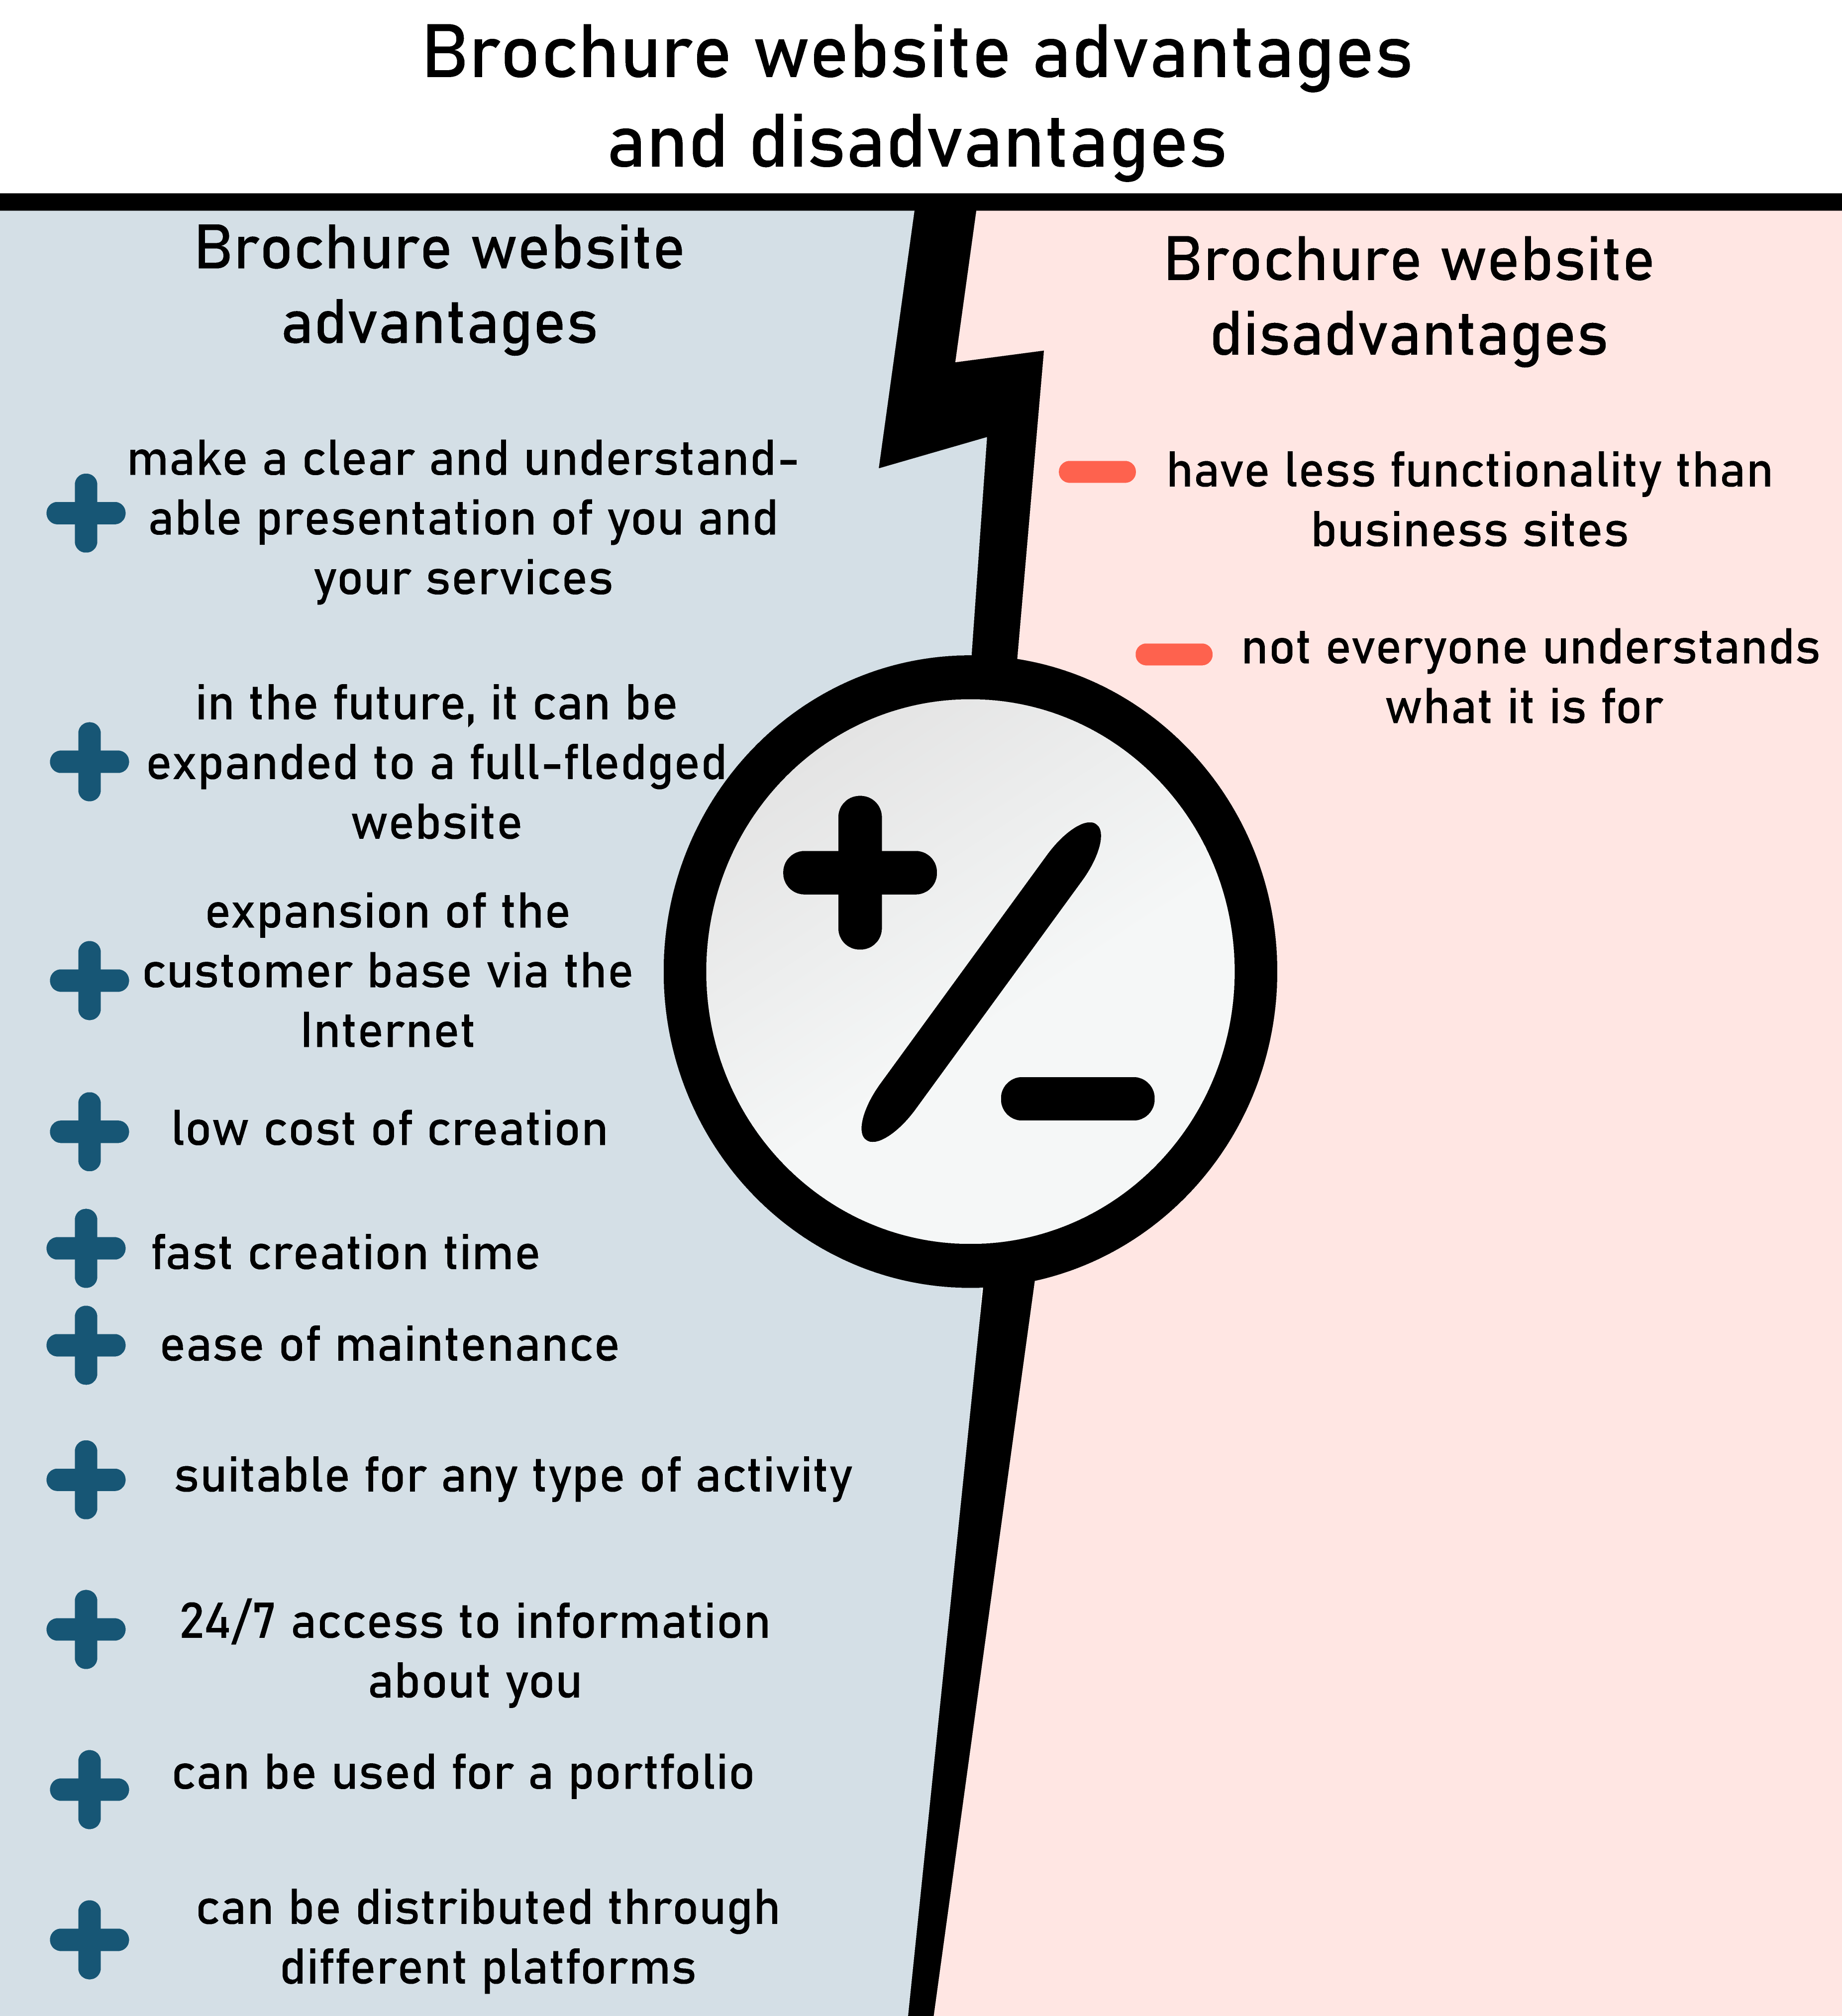 Brochure website advantages and disadvantages